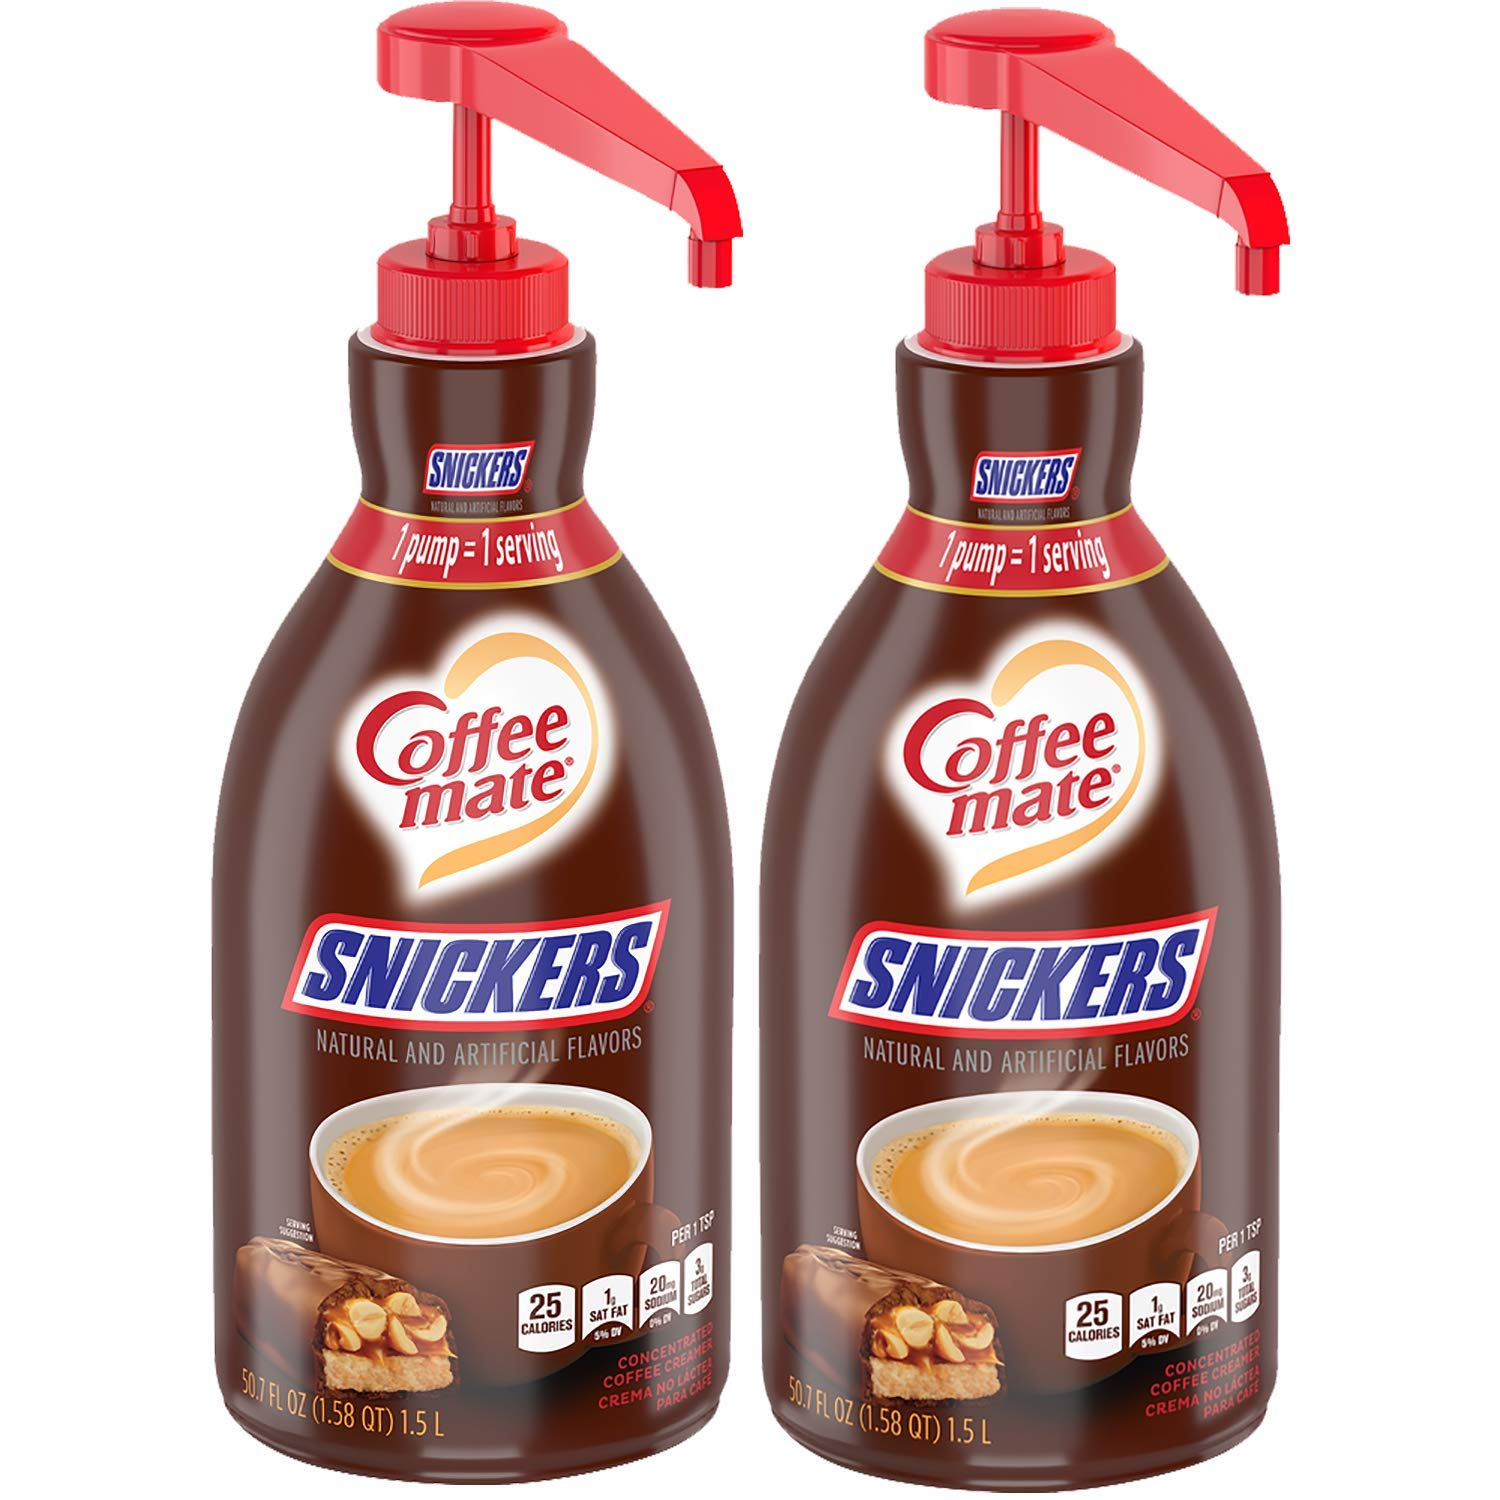 Nestle Coffee Mate Coffee Creamer, Snickers